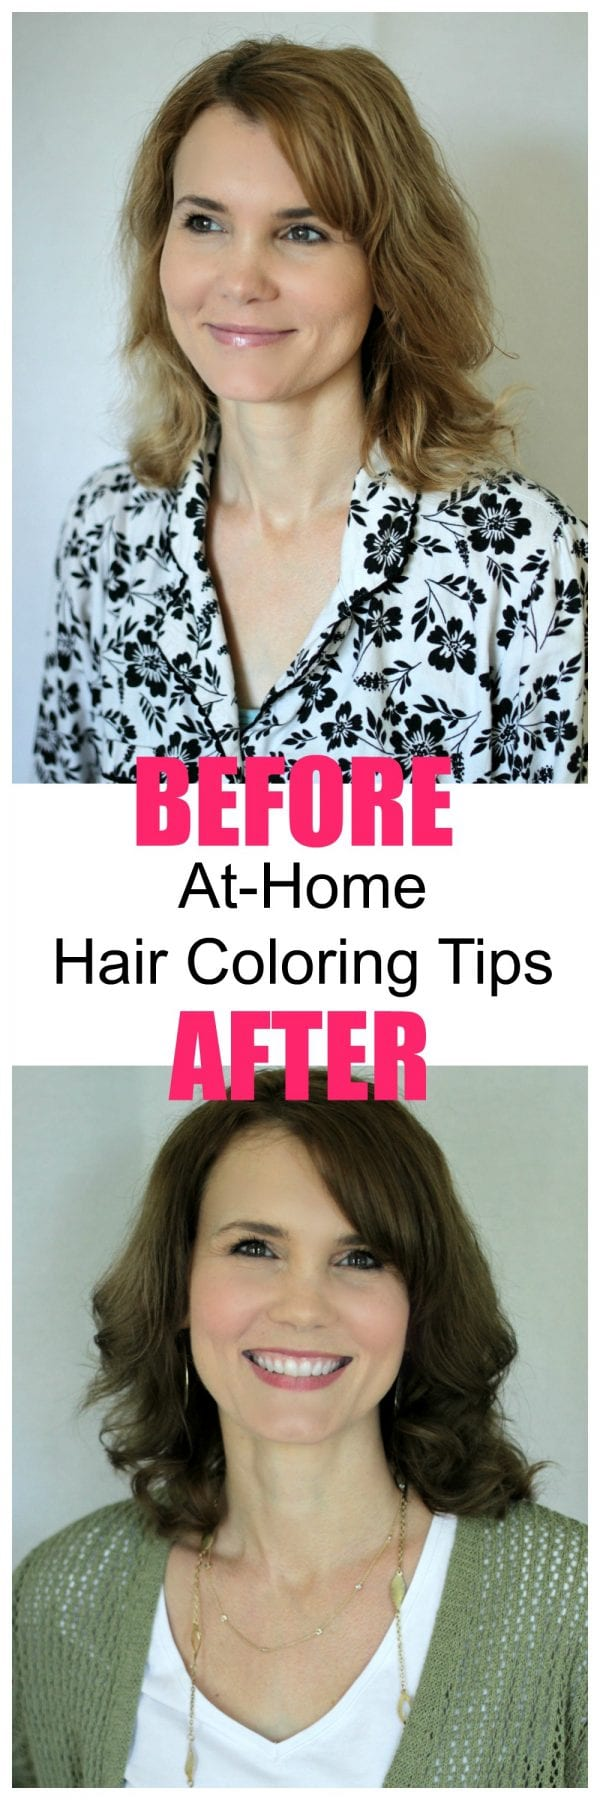 5 Simple Steps to Make Your At-Home Hair Color Last | Mom Fabulous